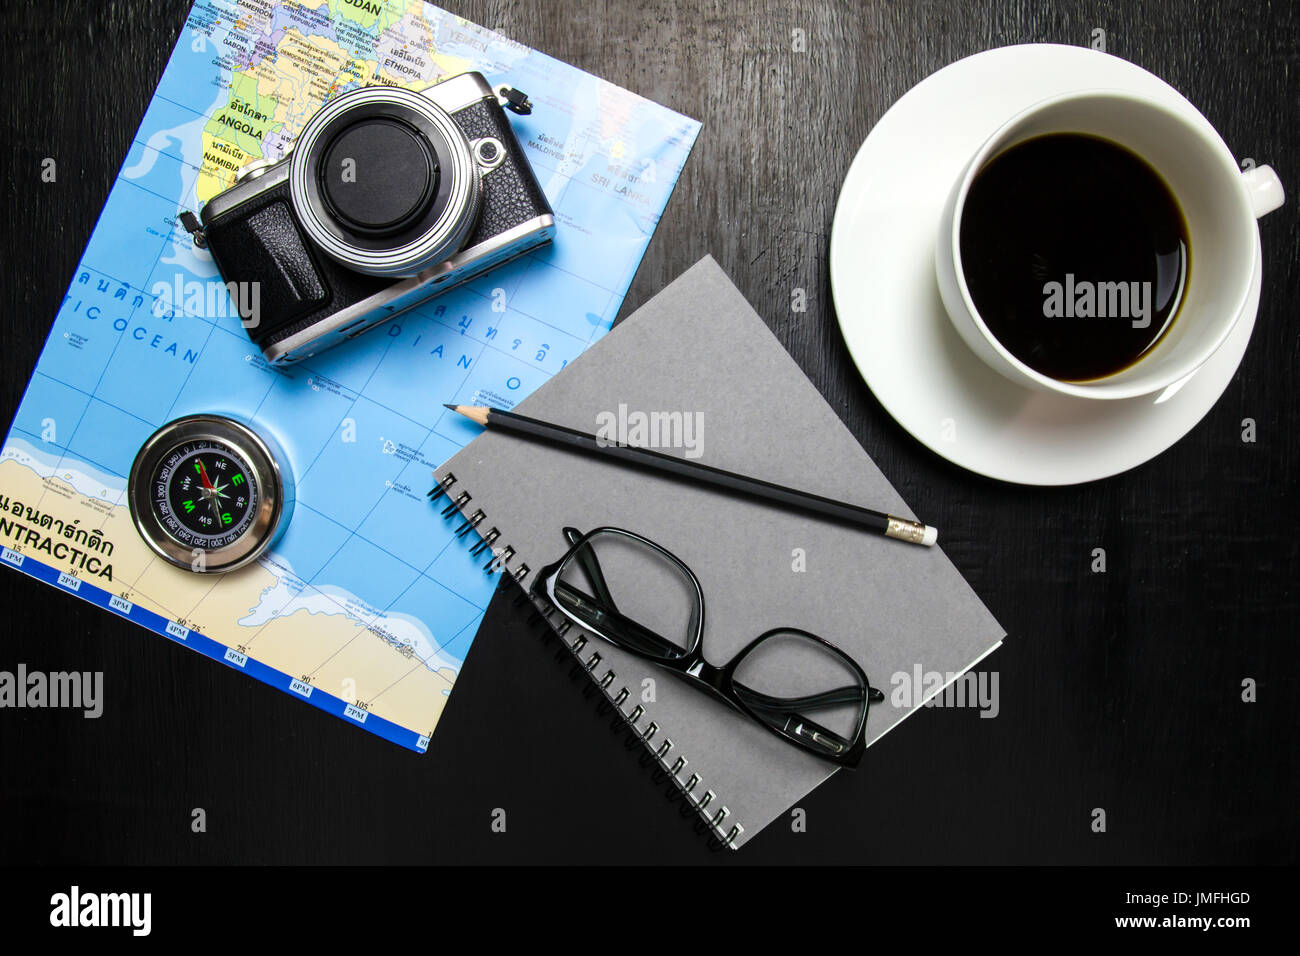 Top view of office desk workspace with coffee cup camera world map top view of office desk workspace with coffee cup camera world map compassnotebookpencil glasses on wooden background gumiabroncs Image collections